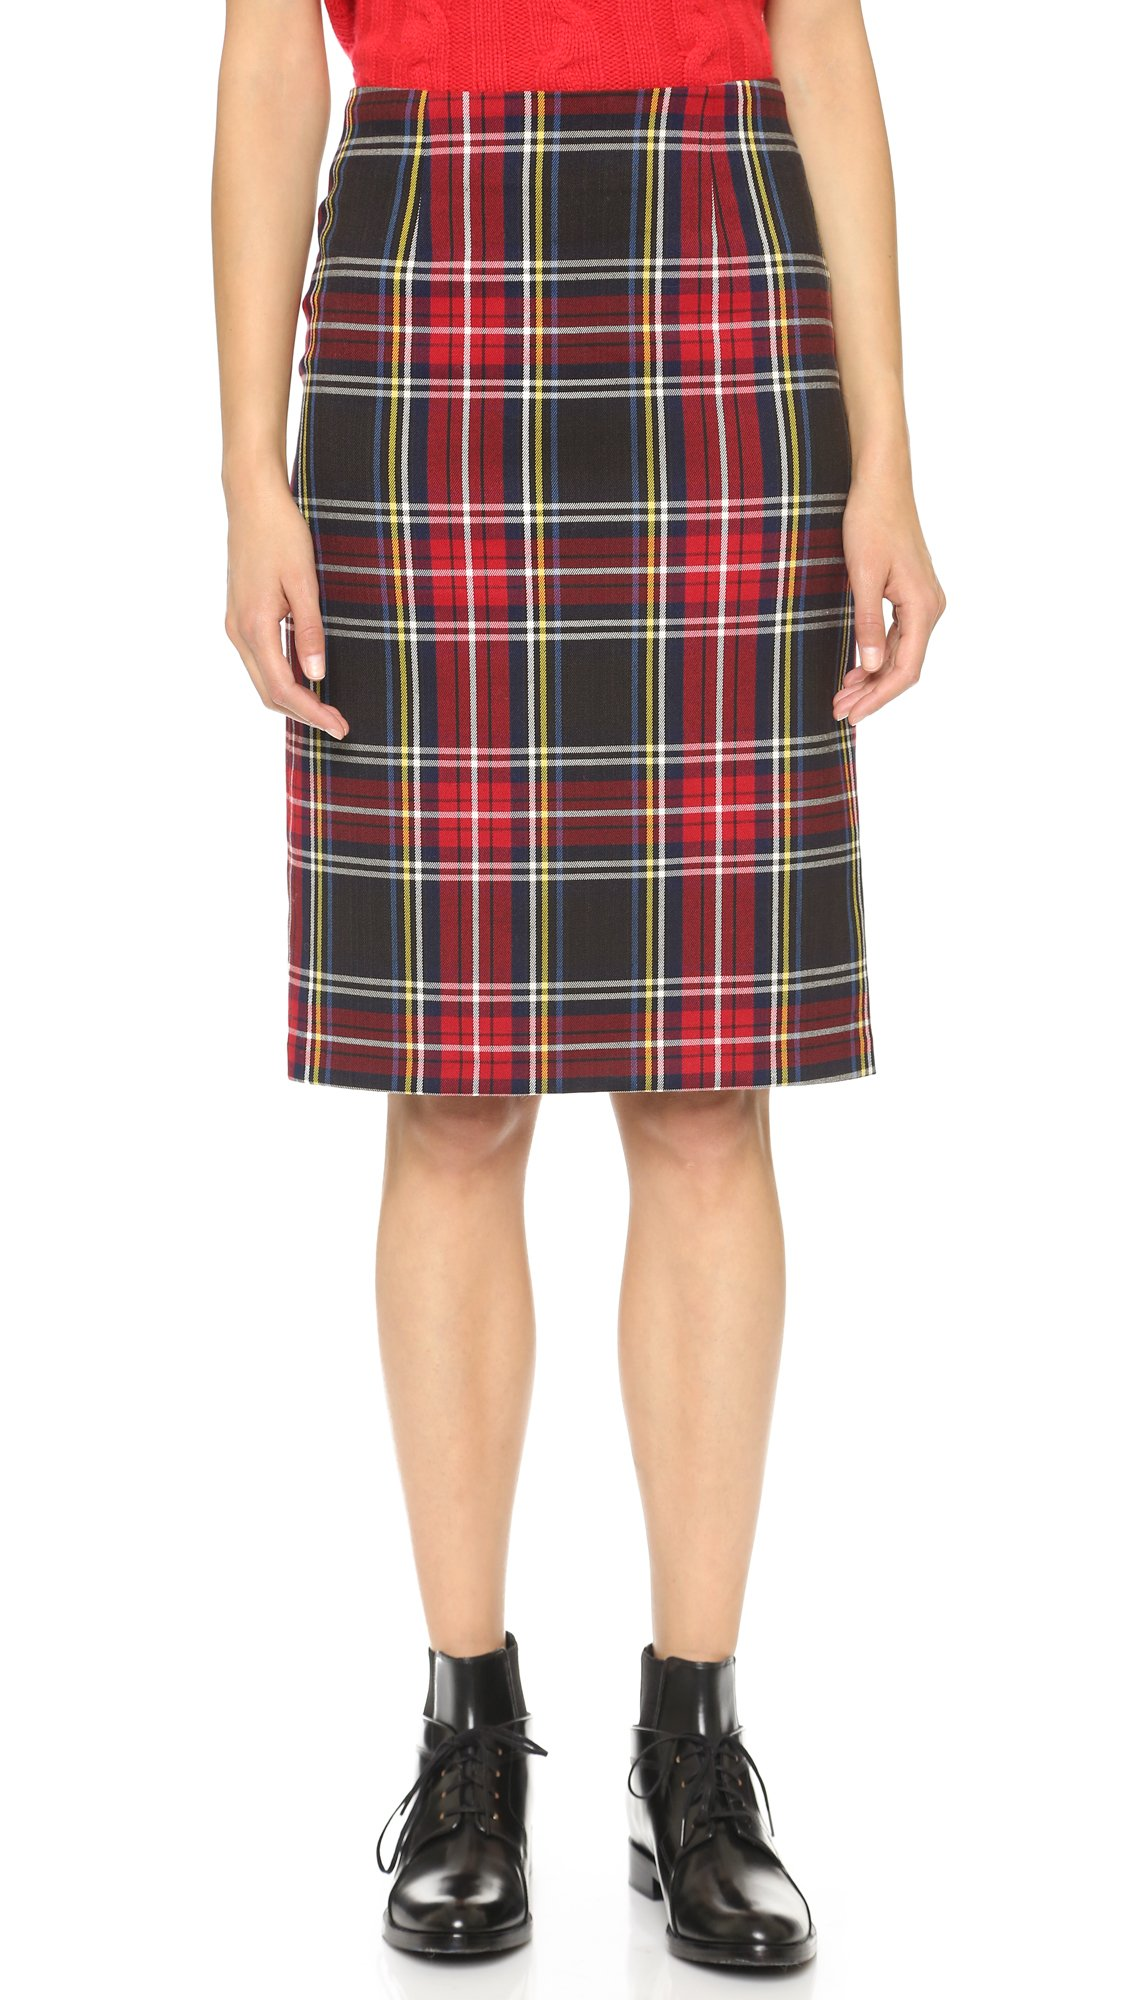 Wiggle waisted and wonderful darling! Crafted from a stretch friendly, and silhouette flattering grey plaid fabric, this pencil skirt is a vintage-inspired separate.